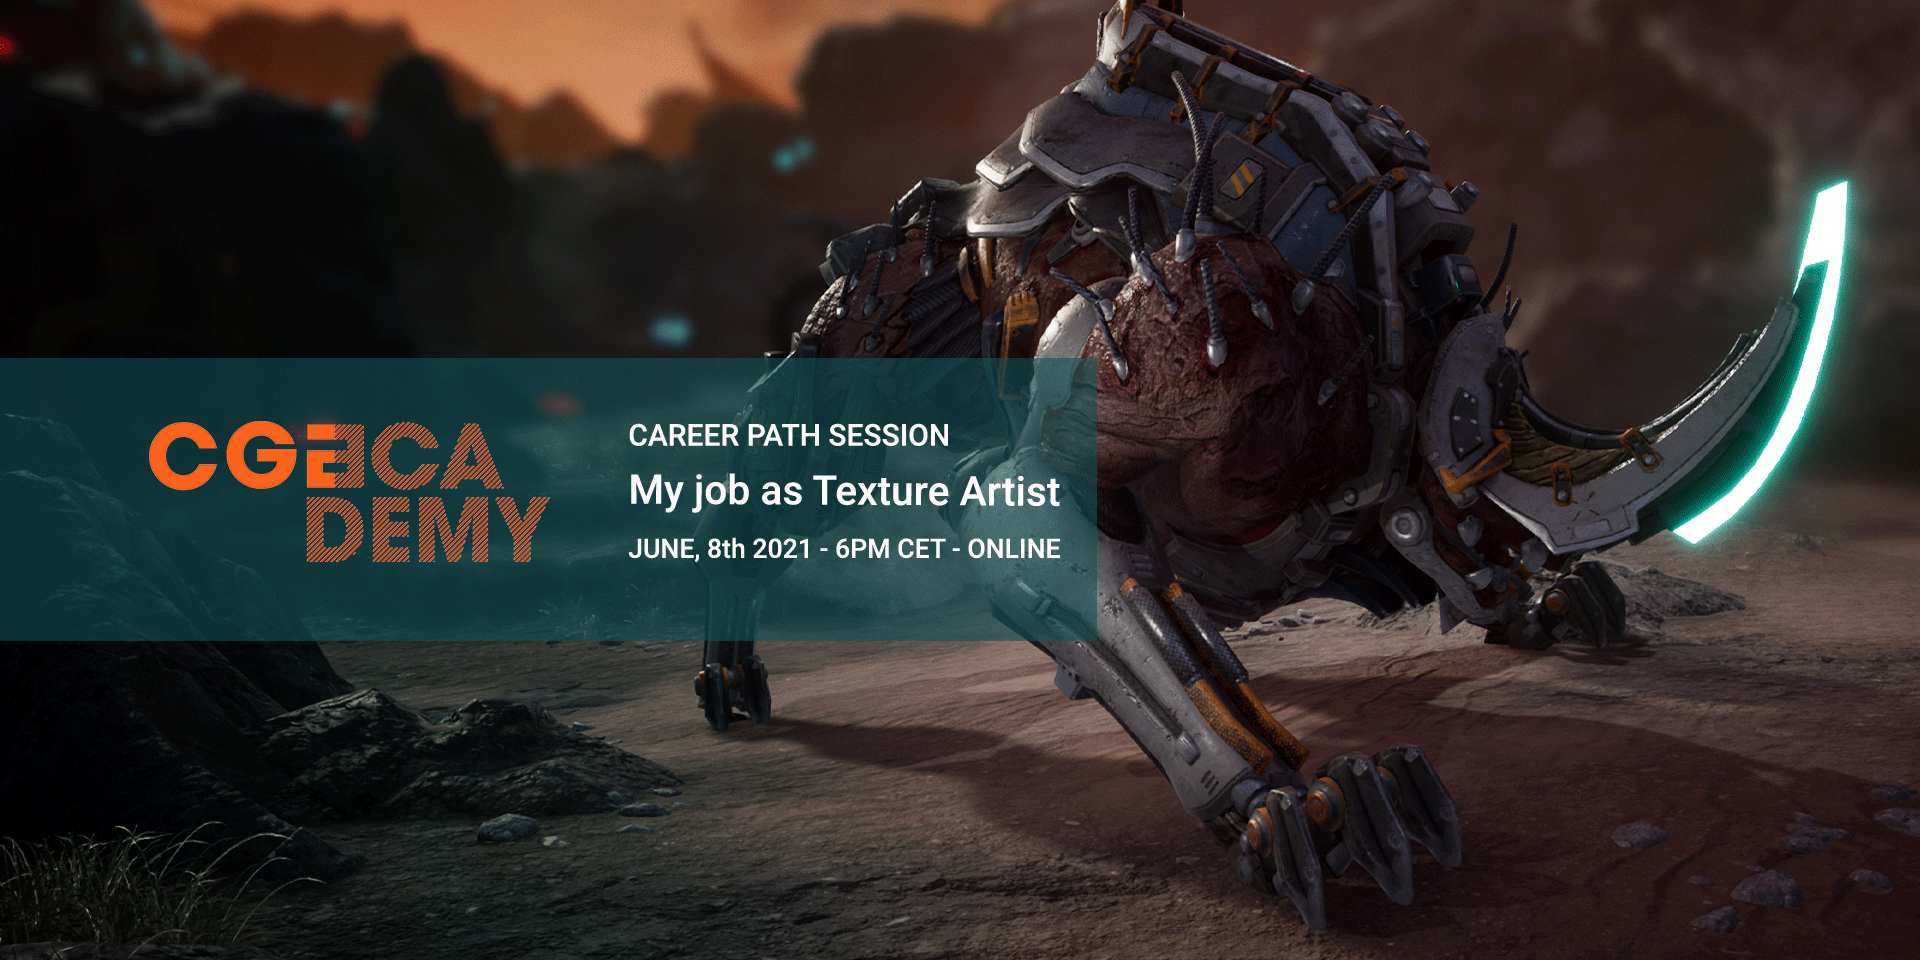 CGAcademy sessions - My Job as Texture Artist